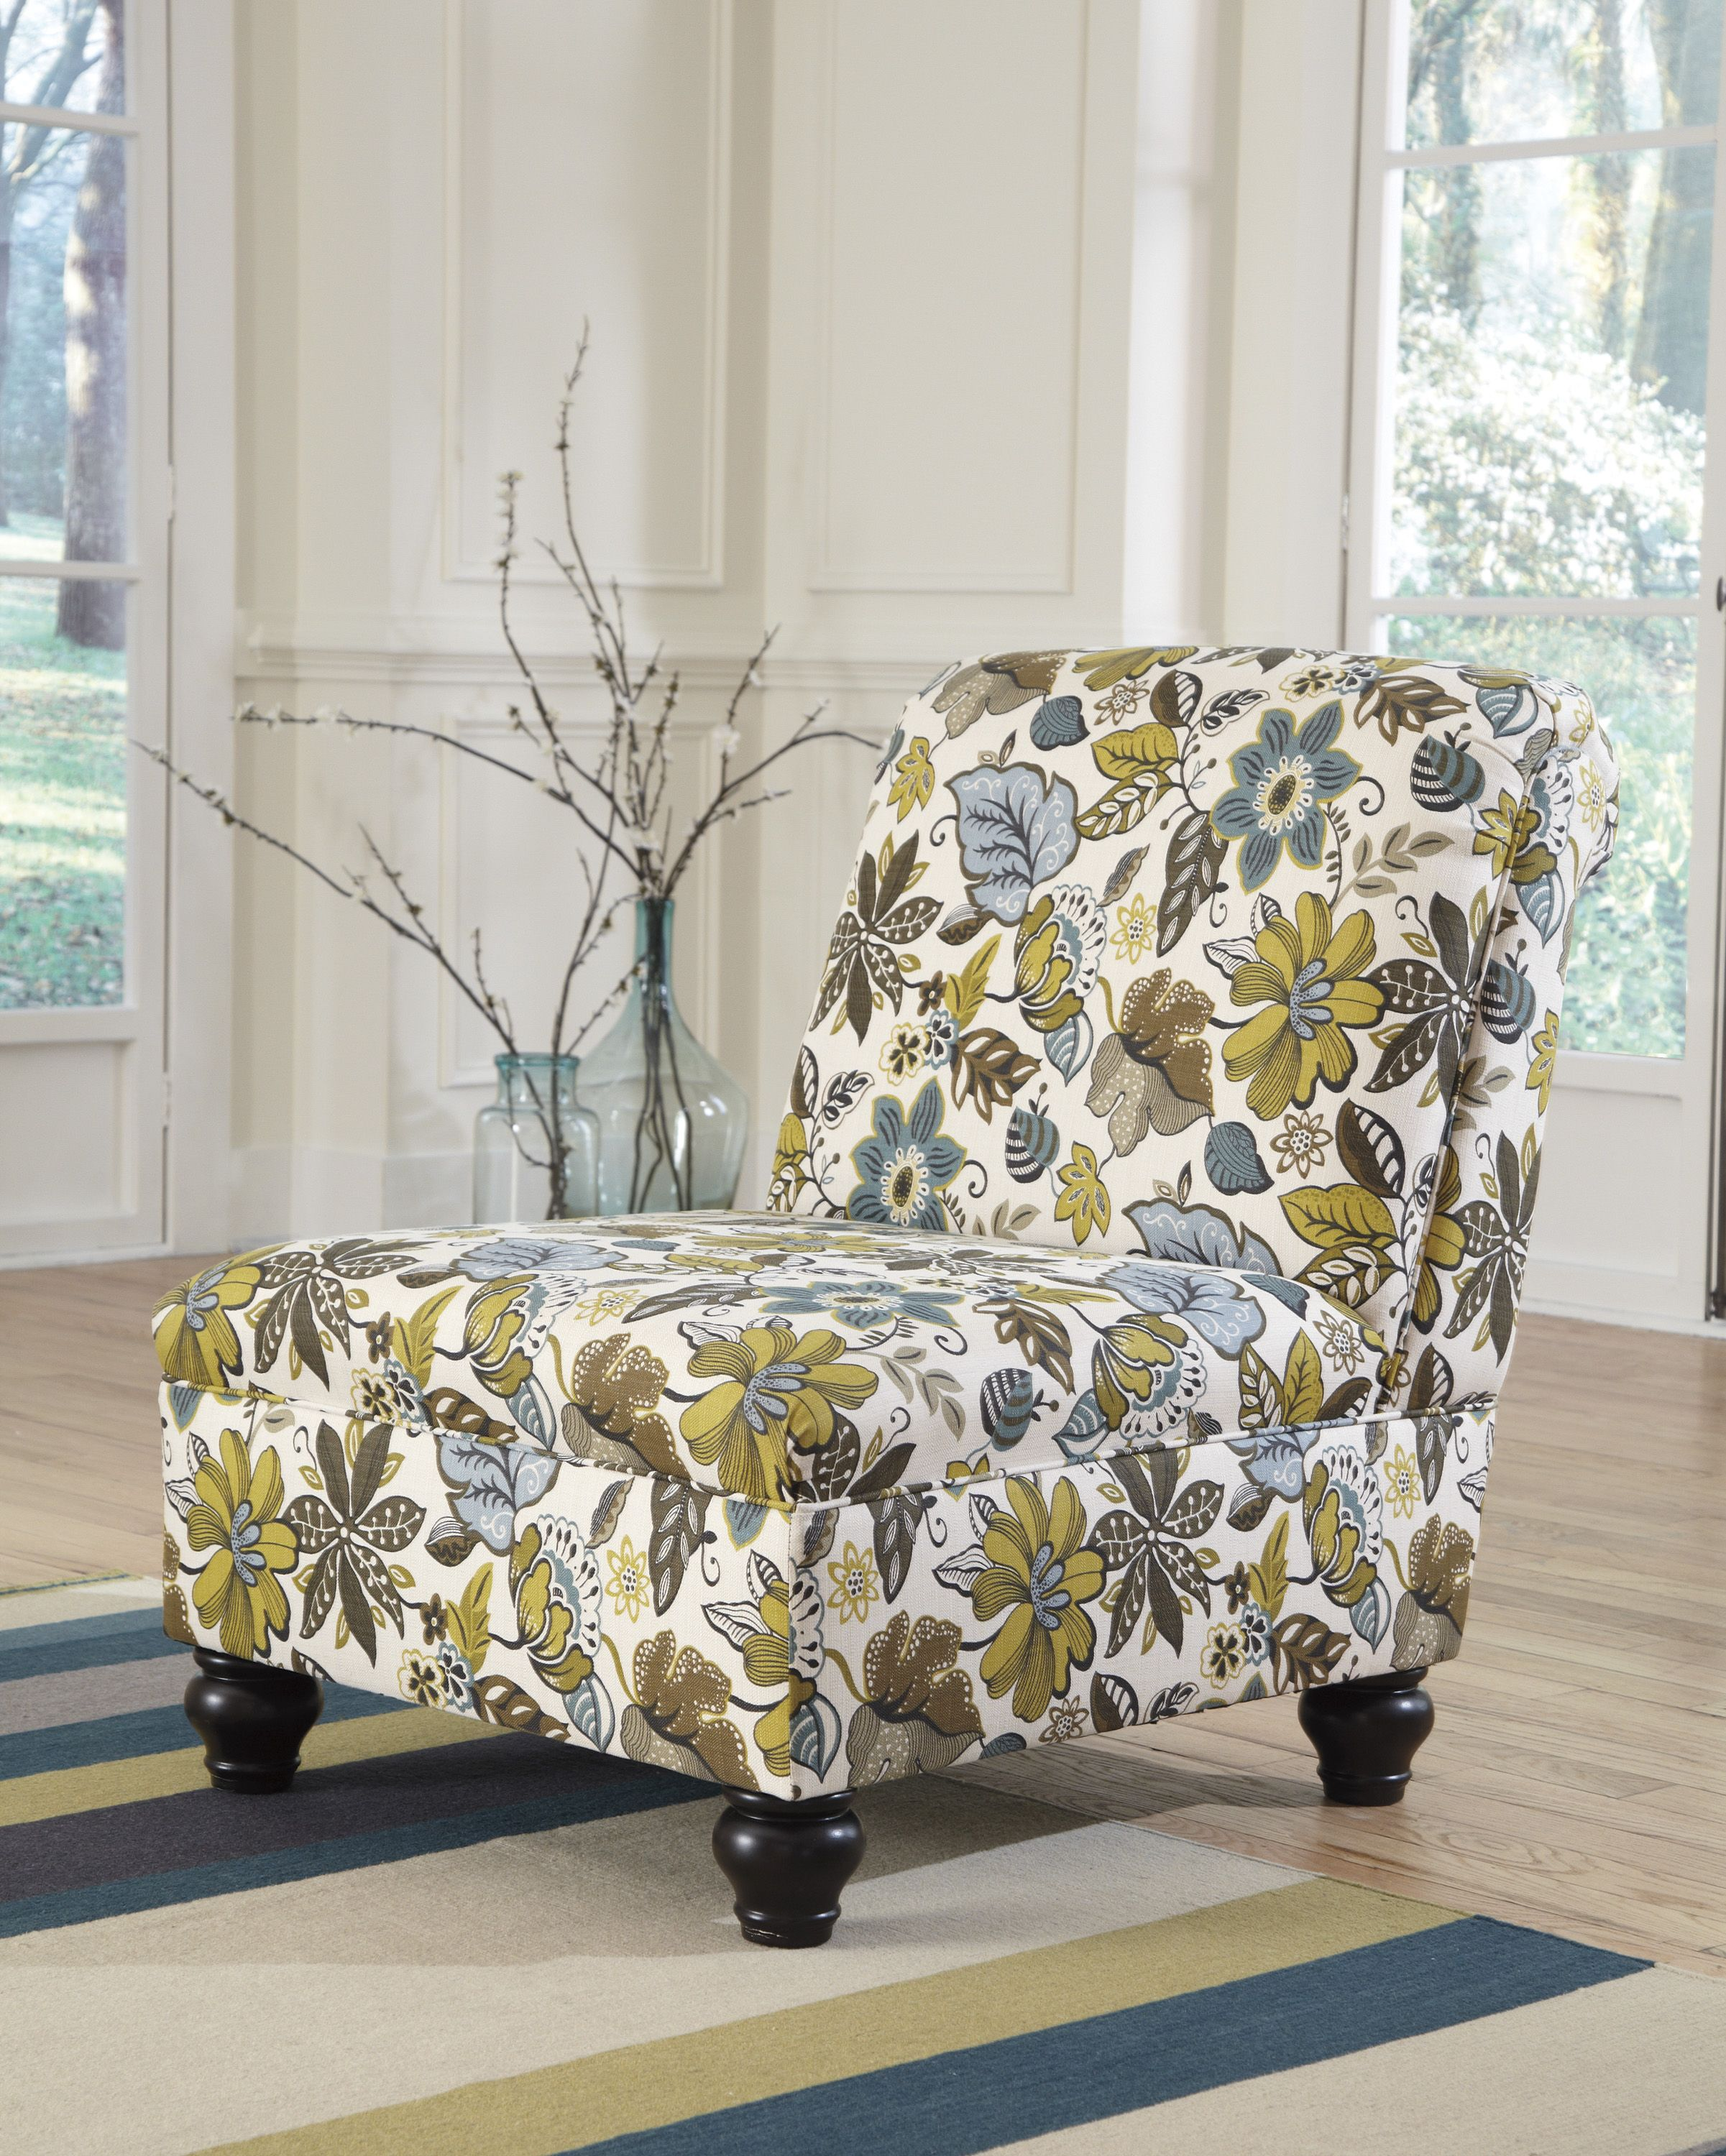 Floral patterned armless chair. Bright and cheery